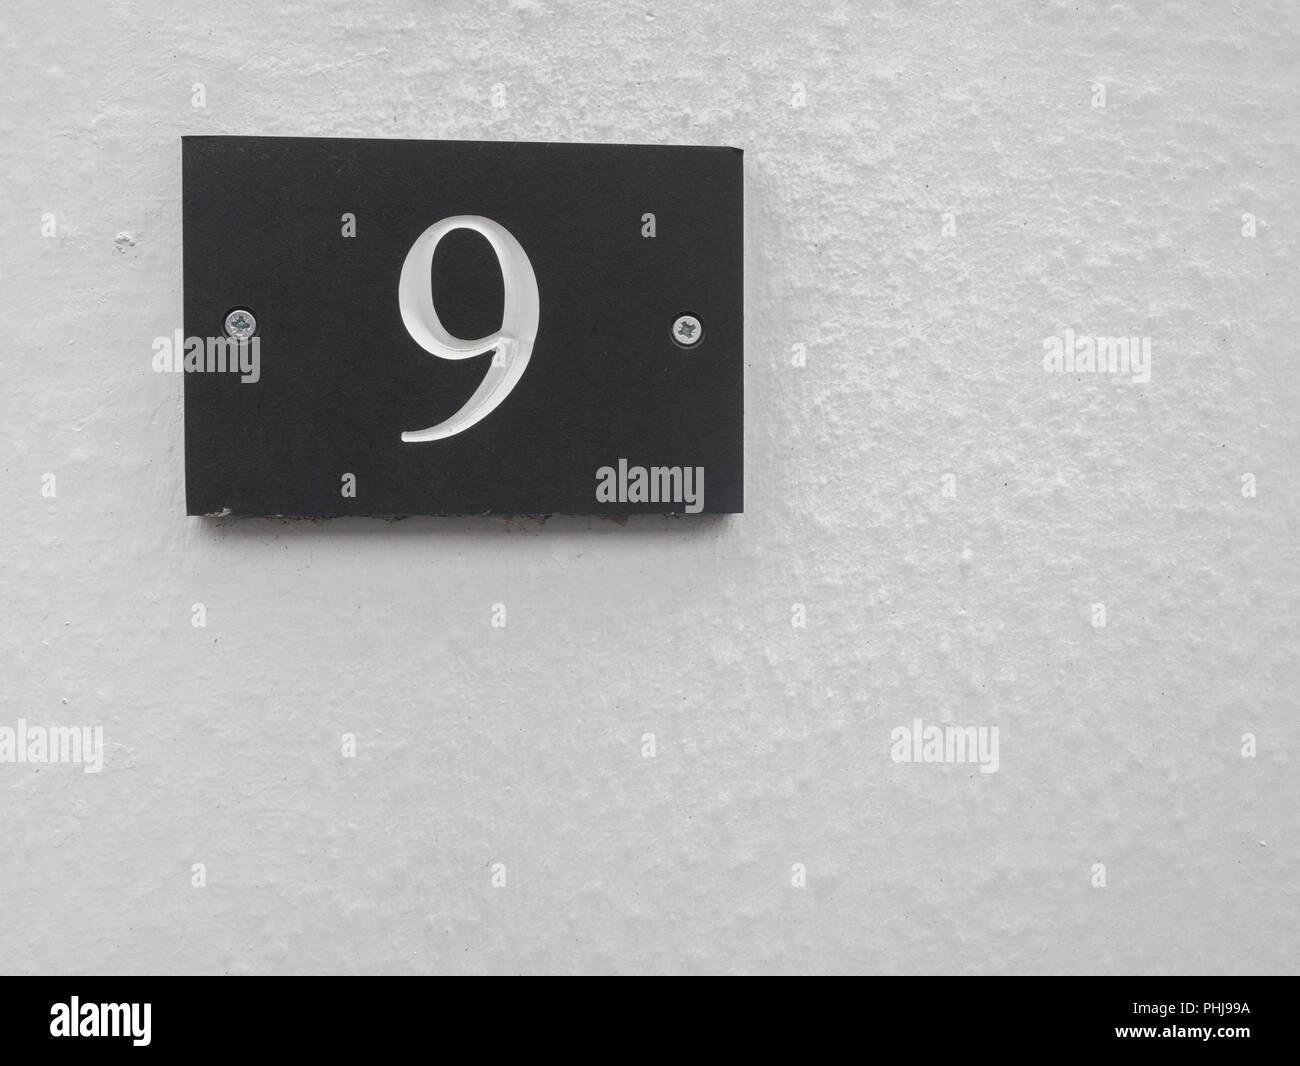 House wall with a Number 9 plaque. Odd number. - Stock Image